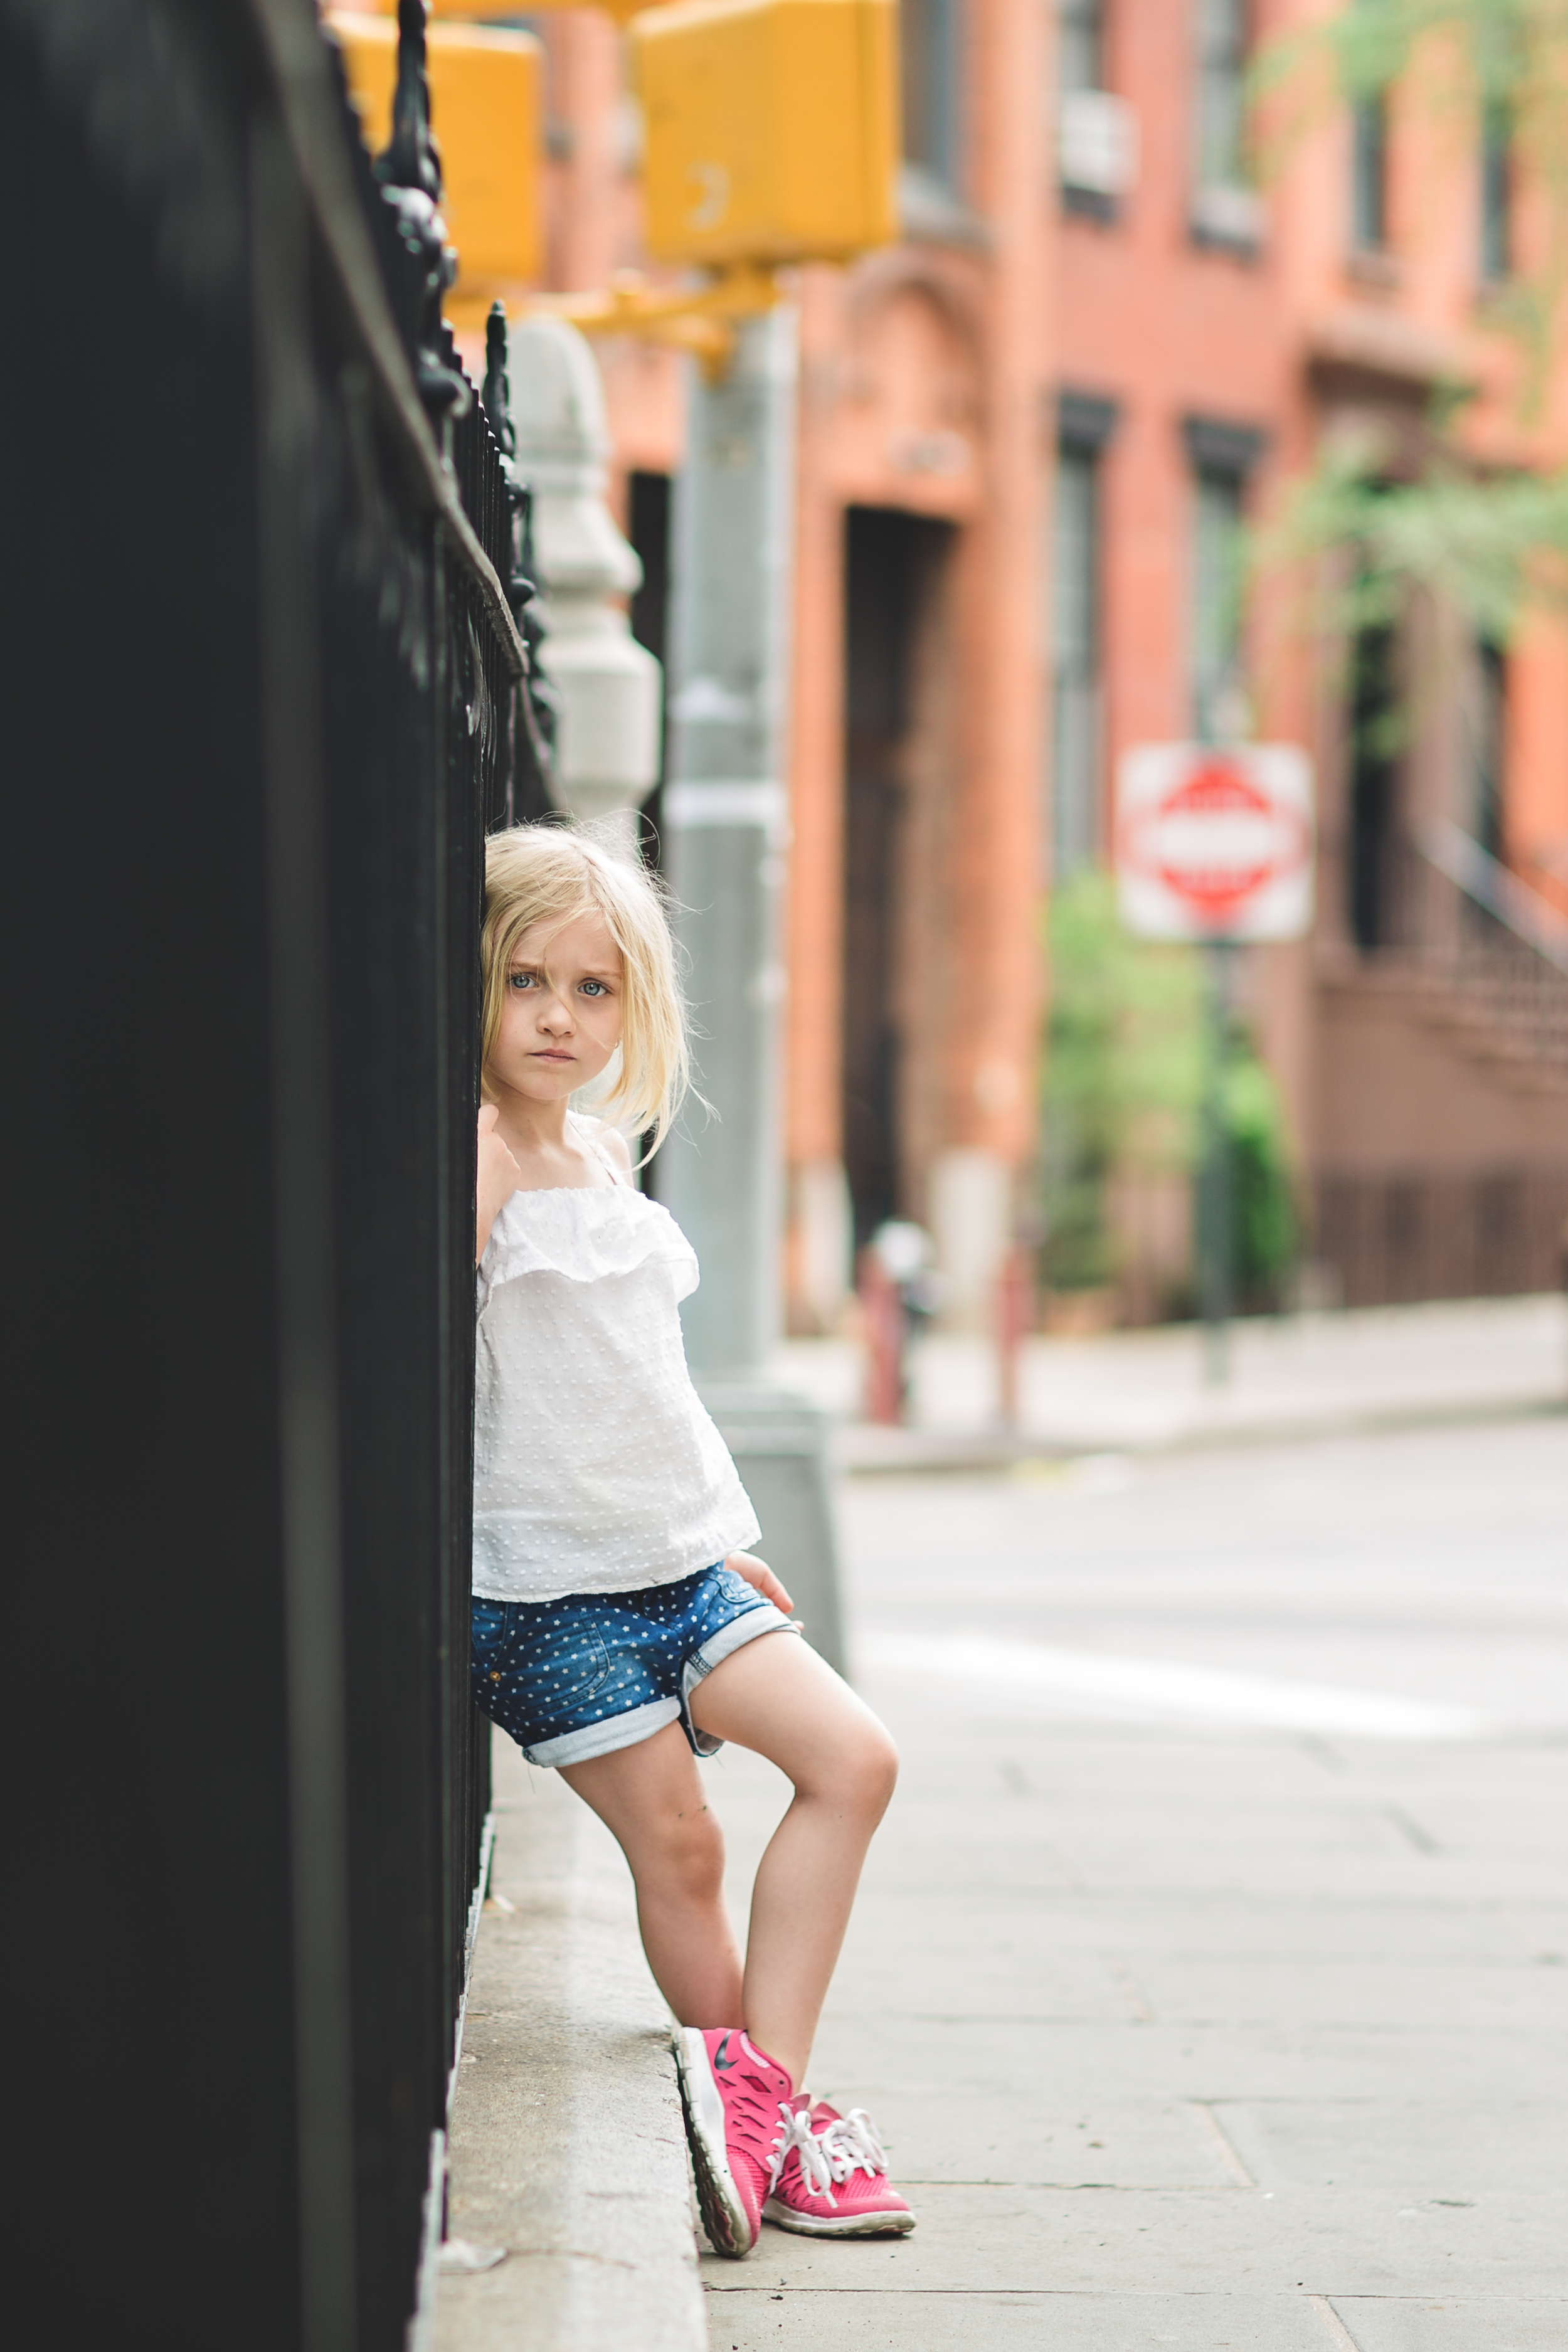 Hello-olivia-photography-long-lsland-family-children-documentary-photographer-carrie-bradshaw-house